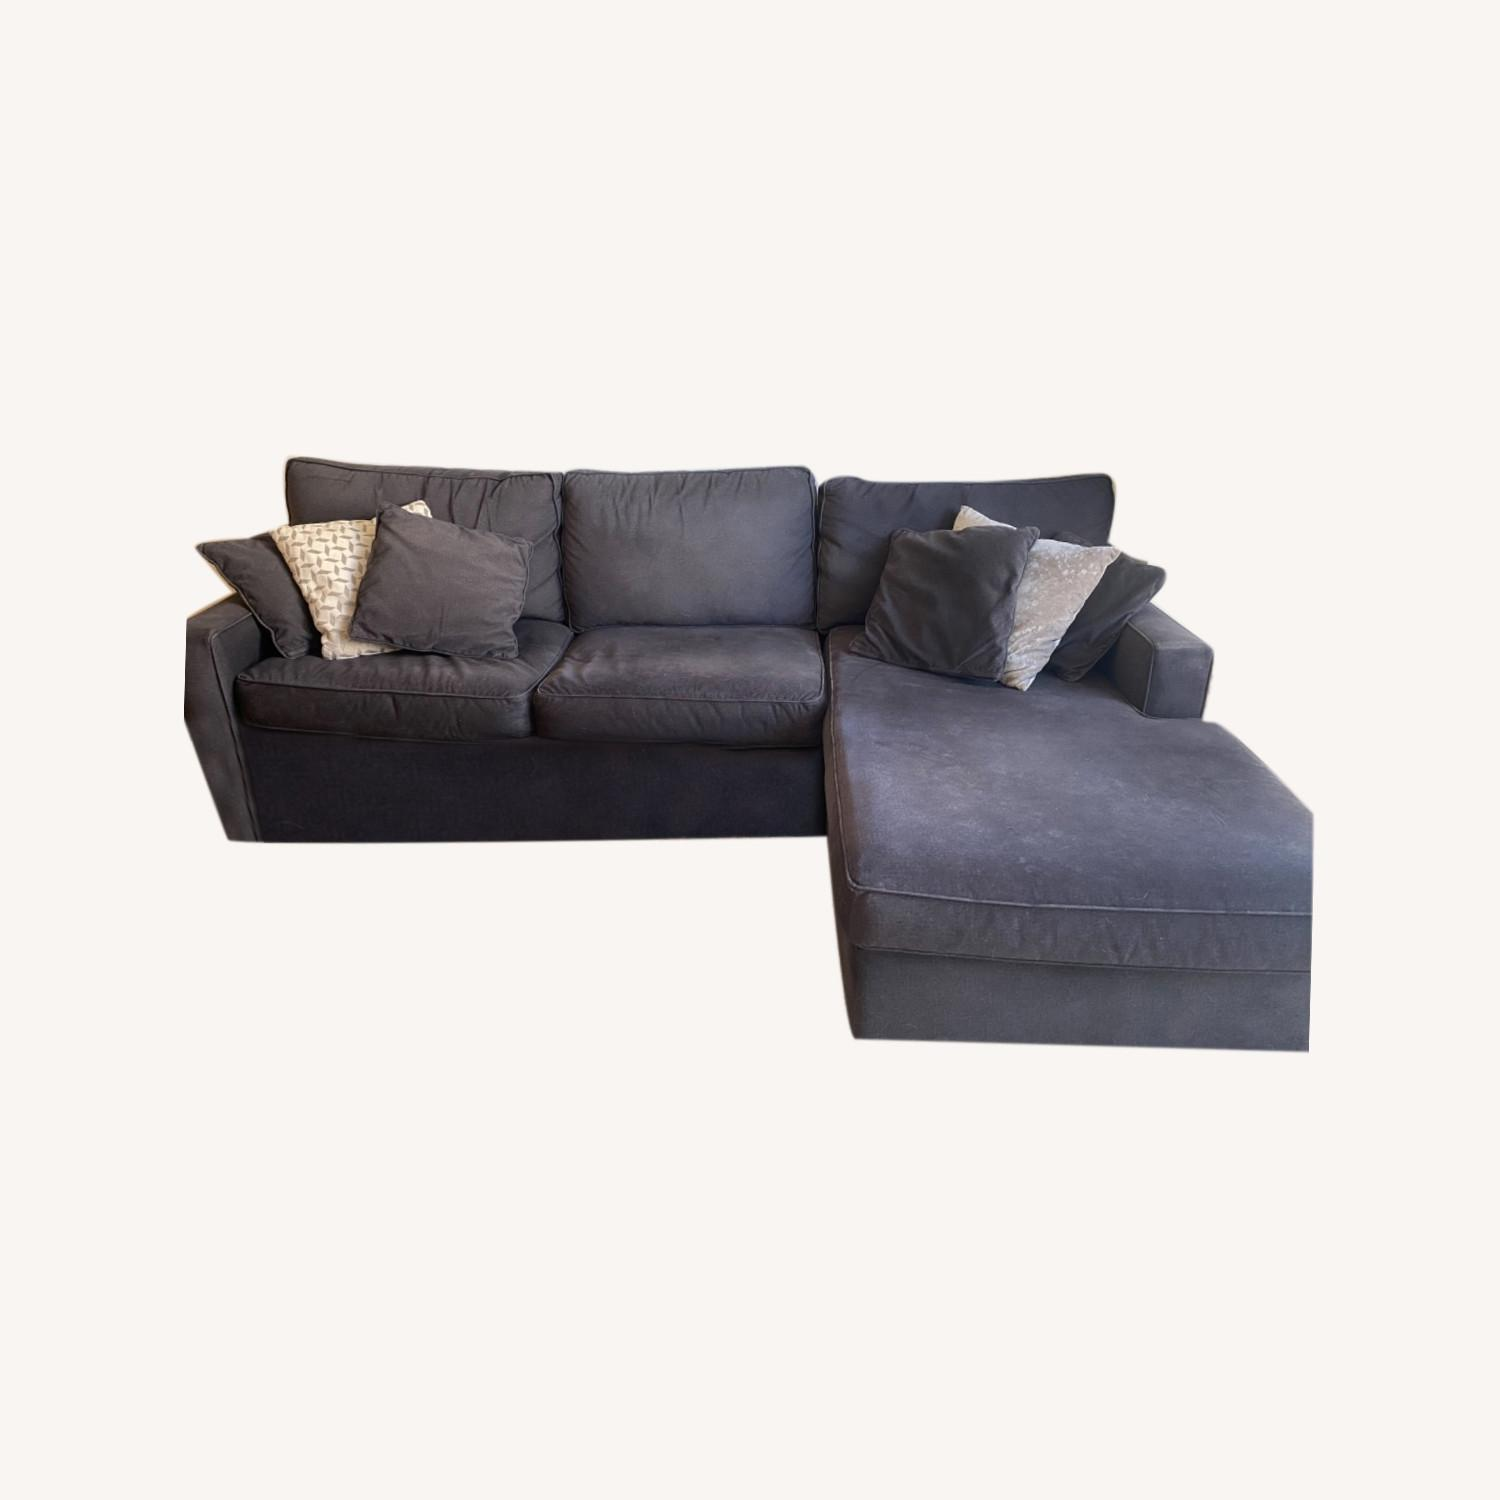 Rowe Furniture Chaise Sectional - image-0